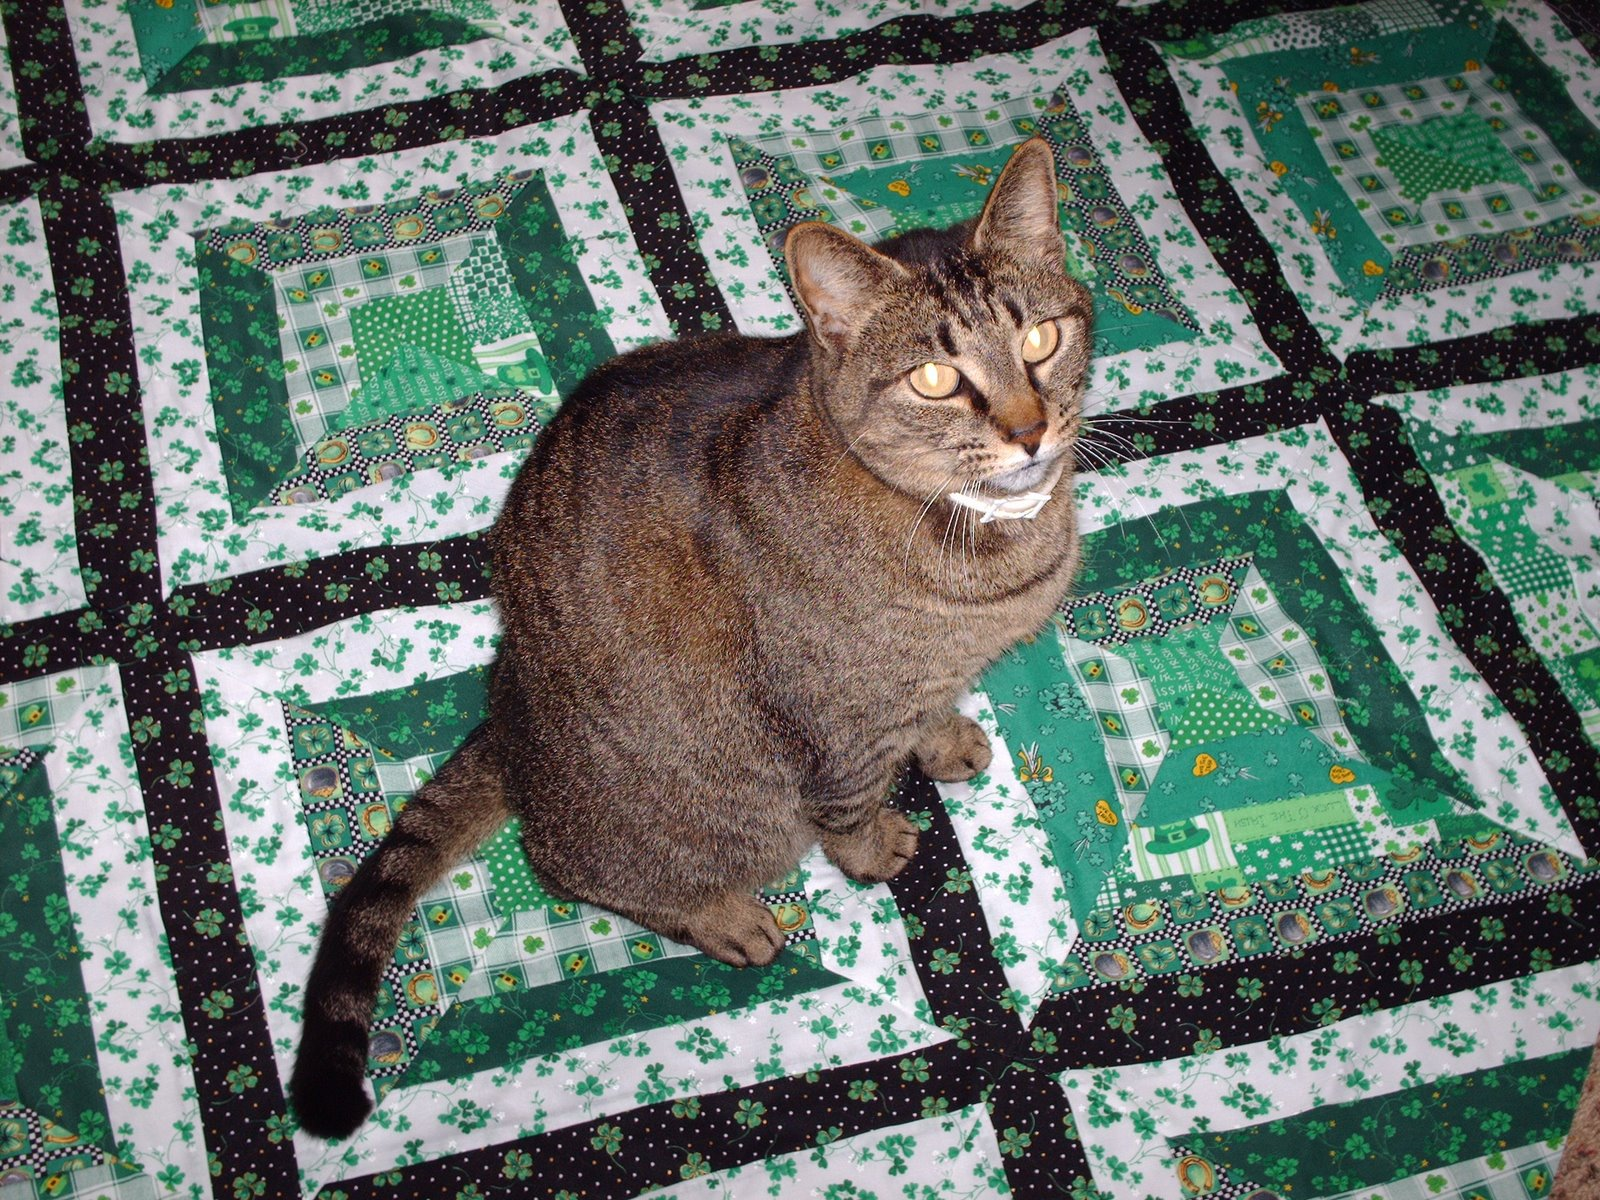 photo regarding Free Printable Cat Quilt Patterns known as Michele Bilyeu Generates *With Centre and Palms*: No cost St